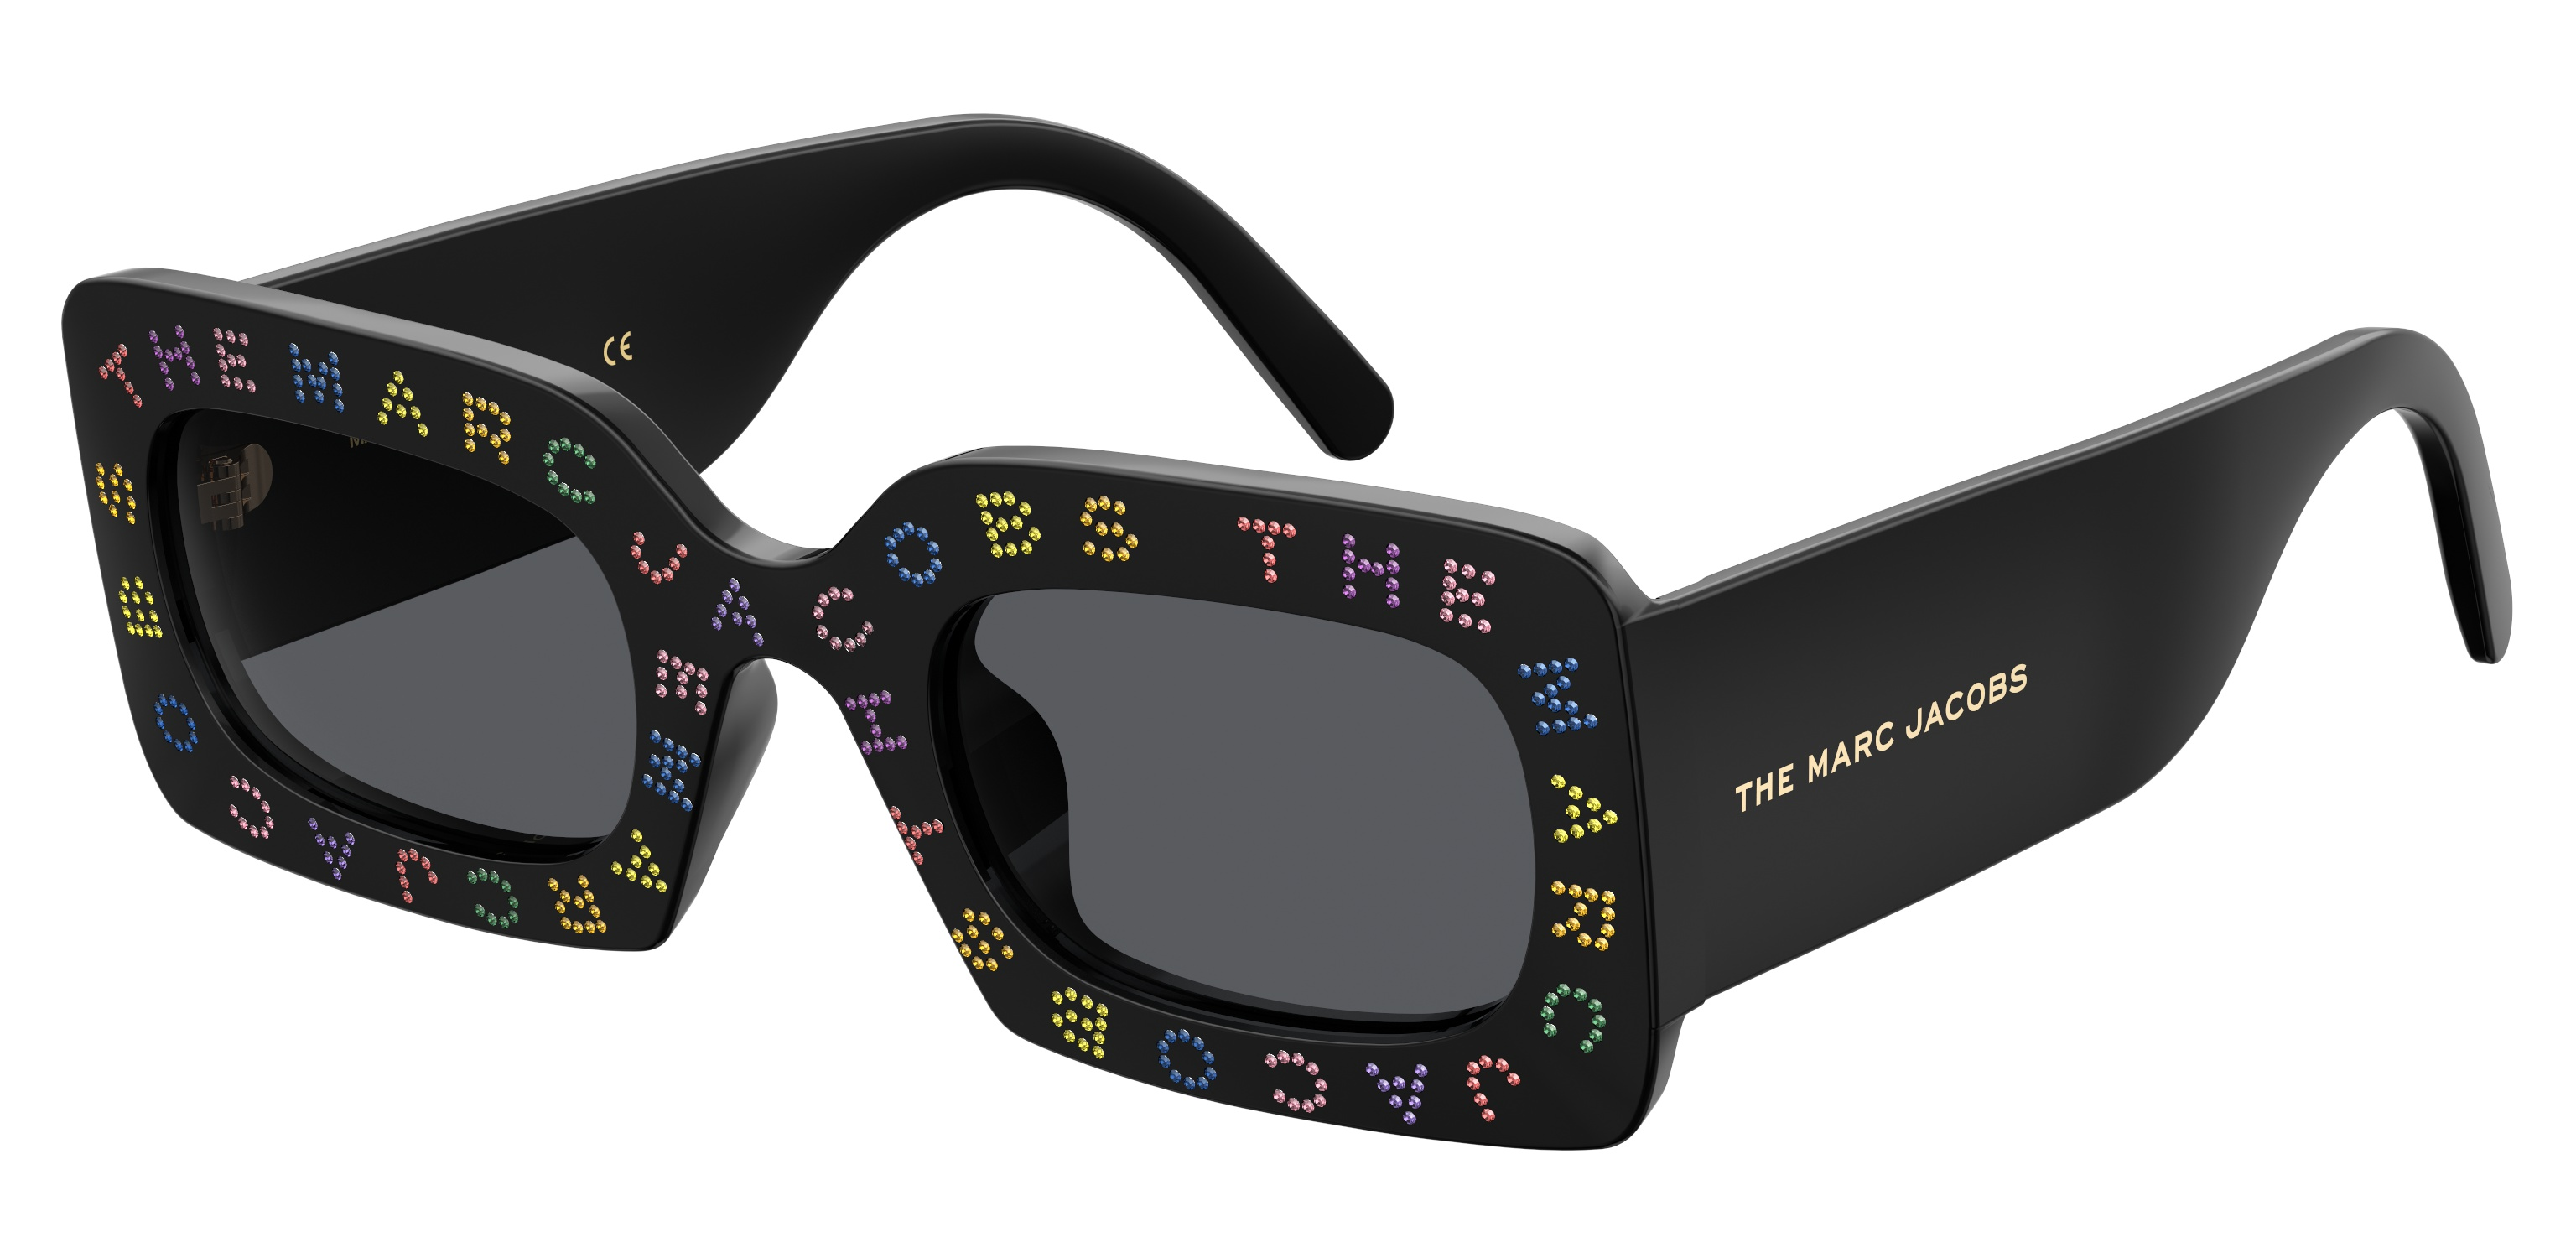 Safilo Group and Marc Jacobs announce the early renewal of the licensing agreement for Marc Jacobs Eyewear